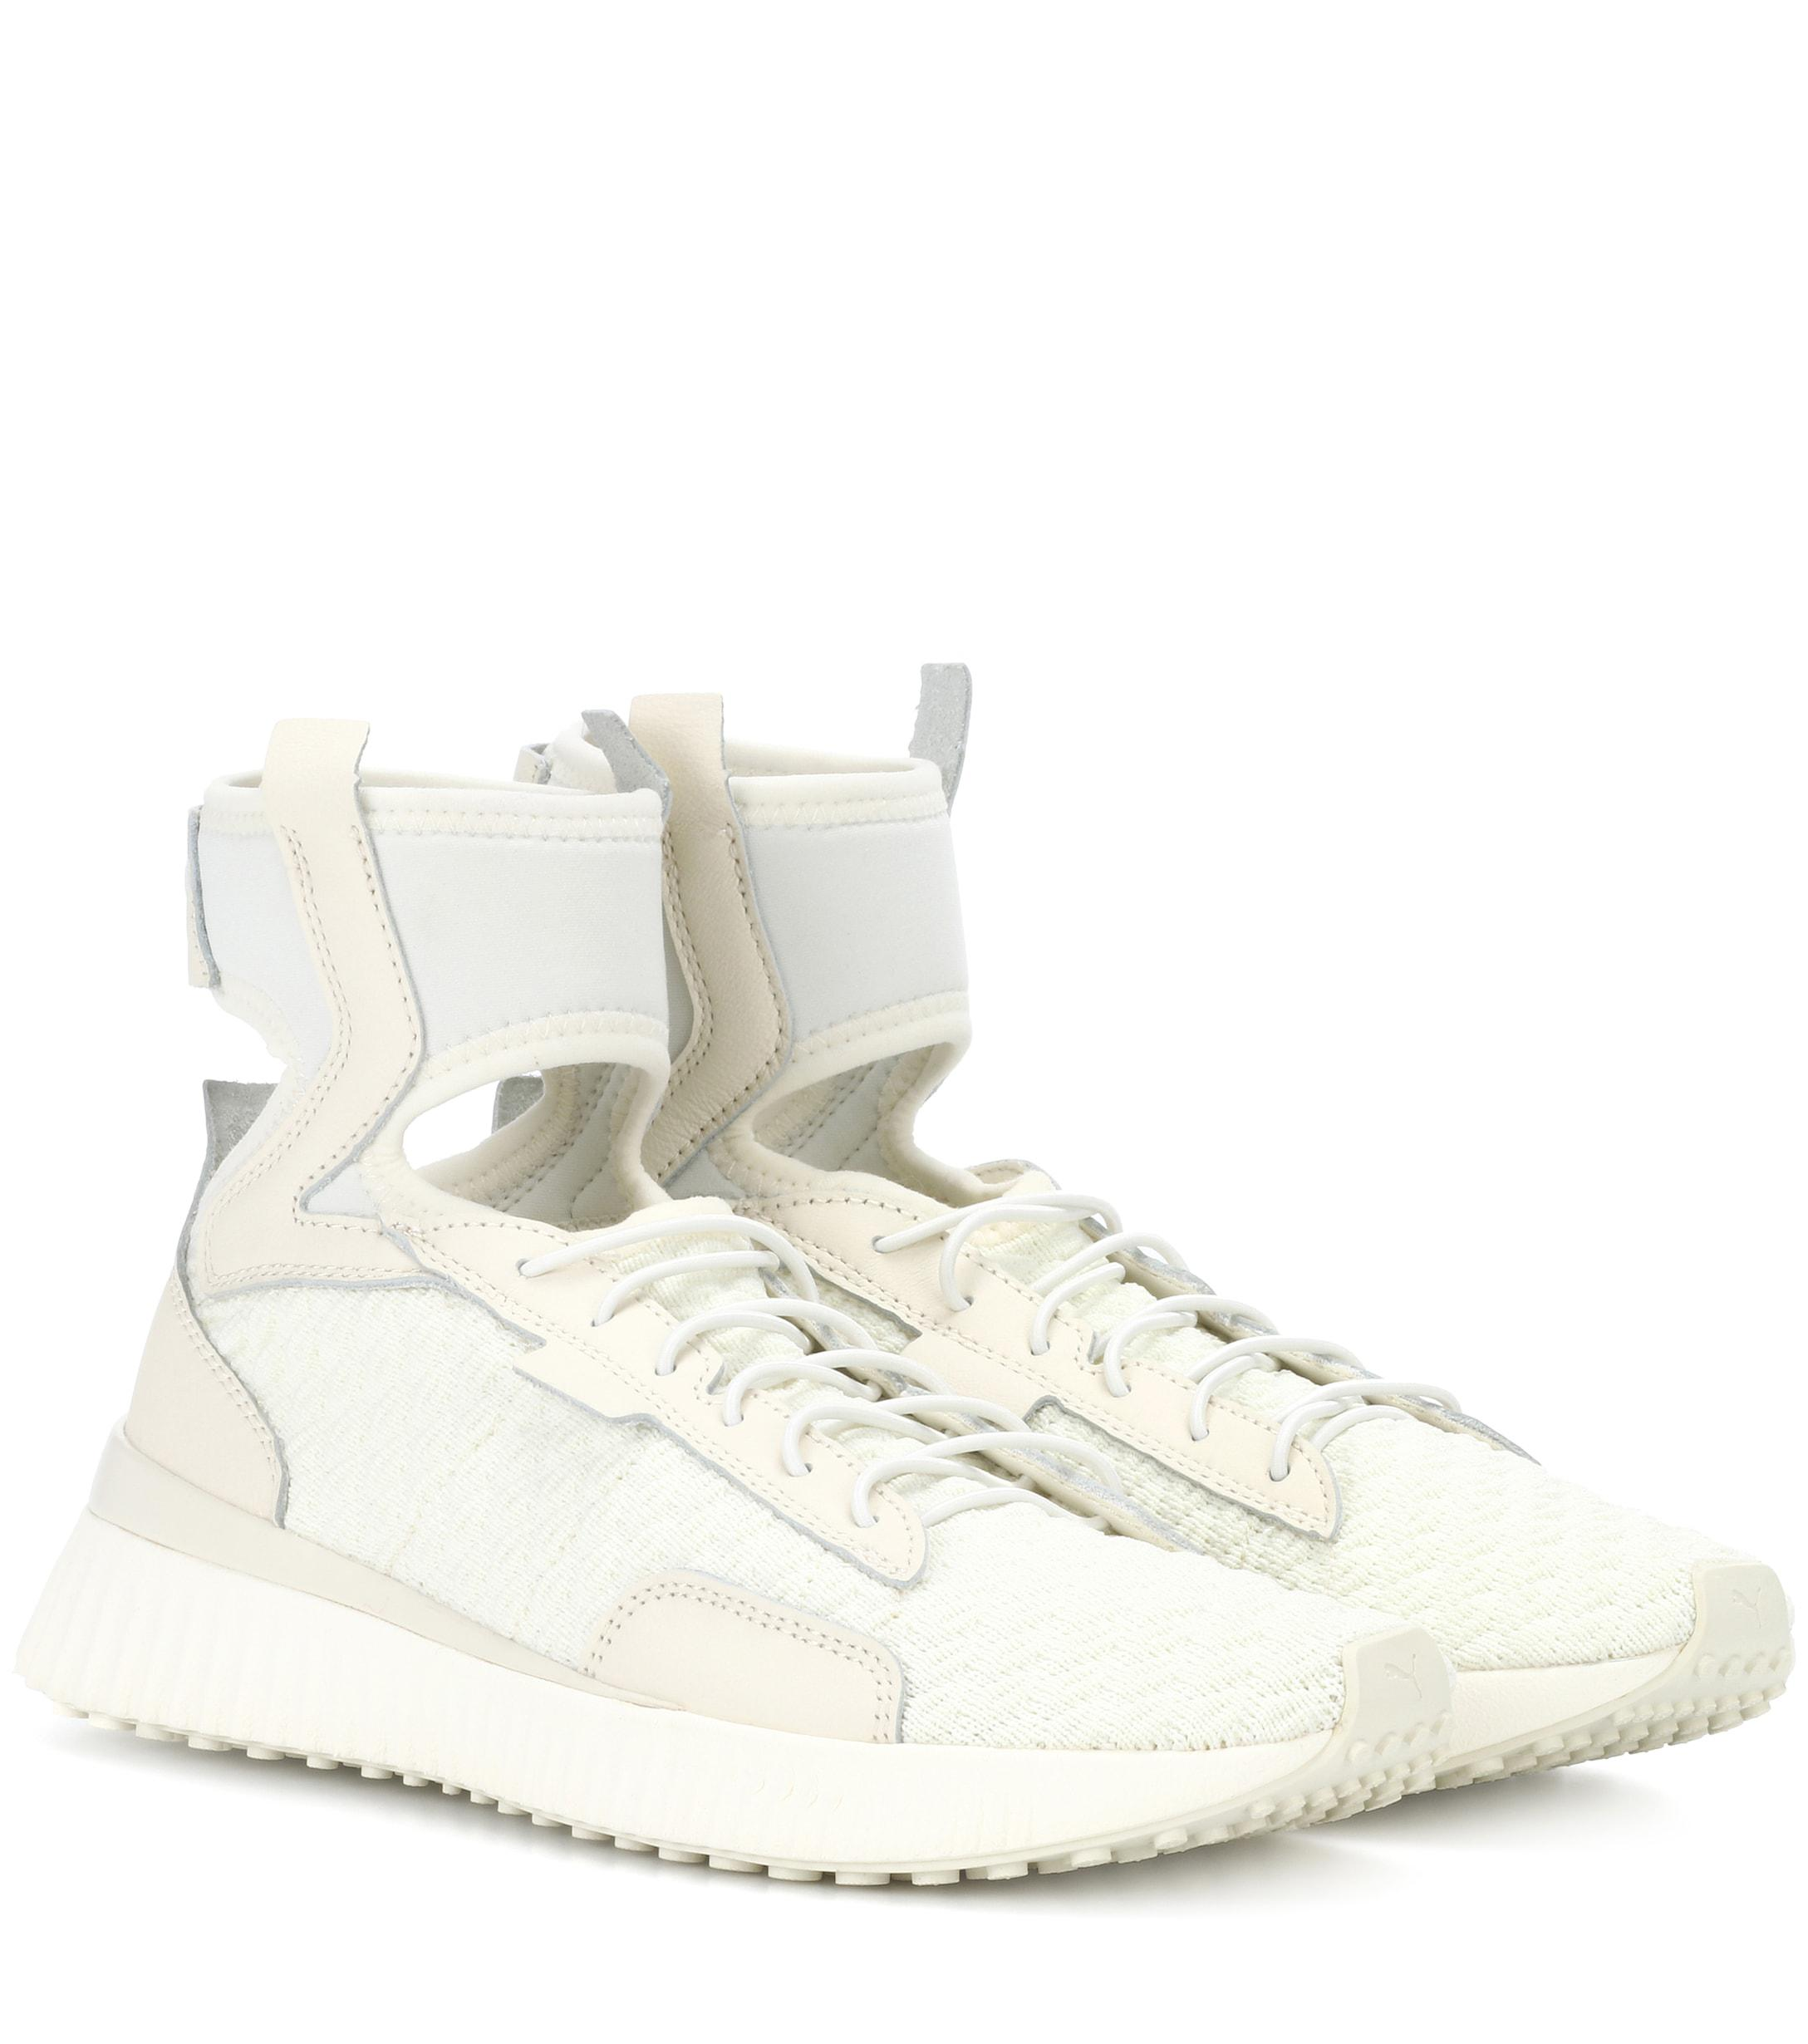 Lyst White Mid Sneakers Trainer Puma The In fwPOxSfrq 153420867e5